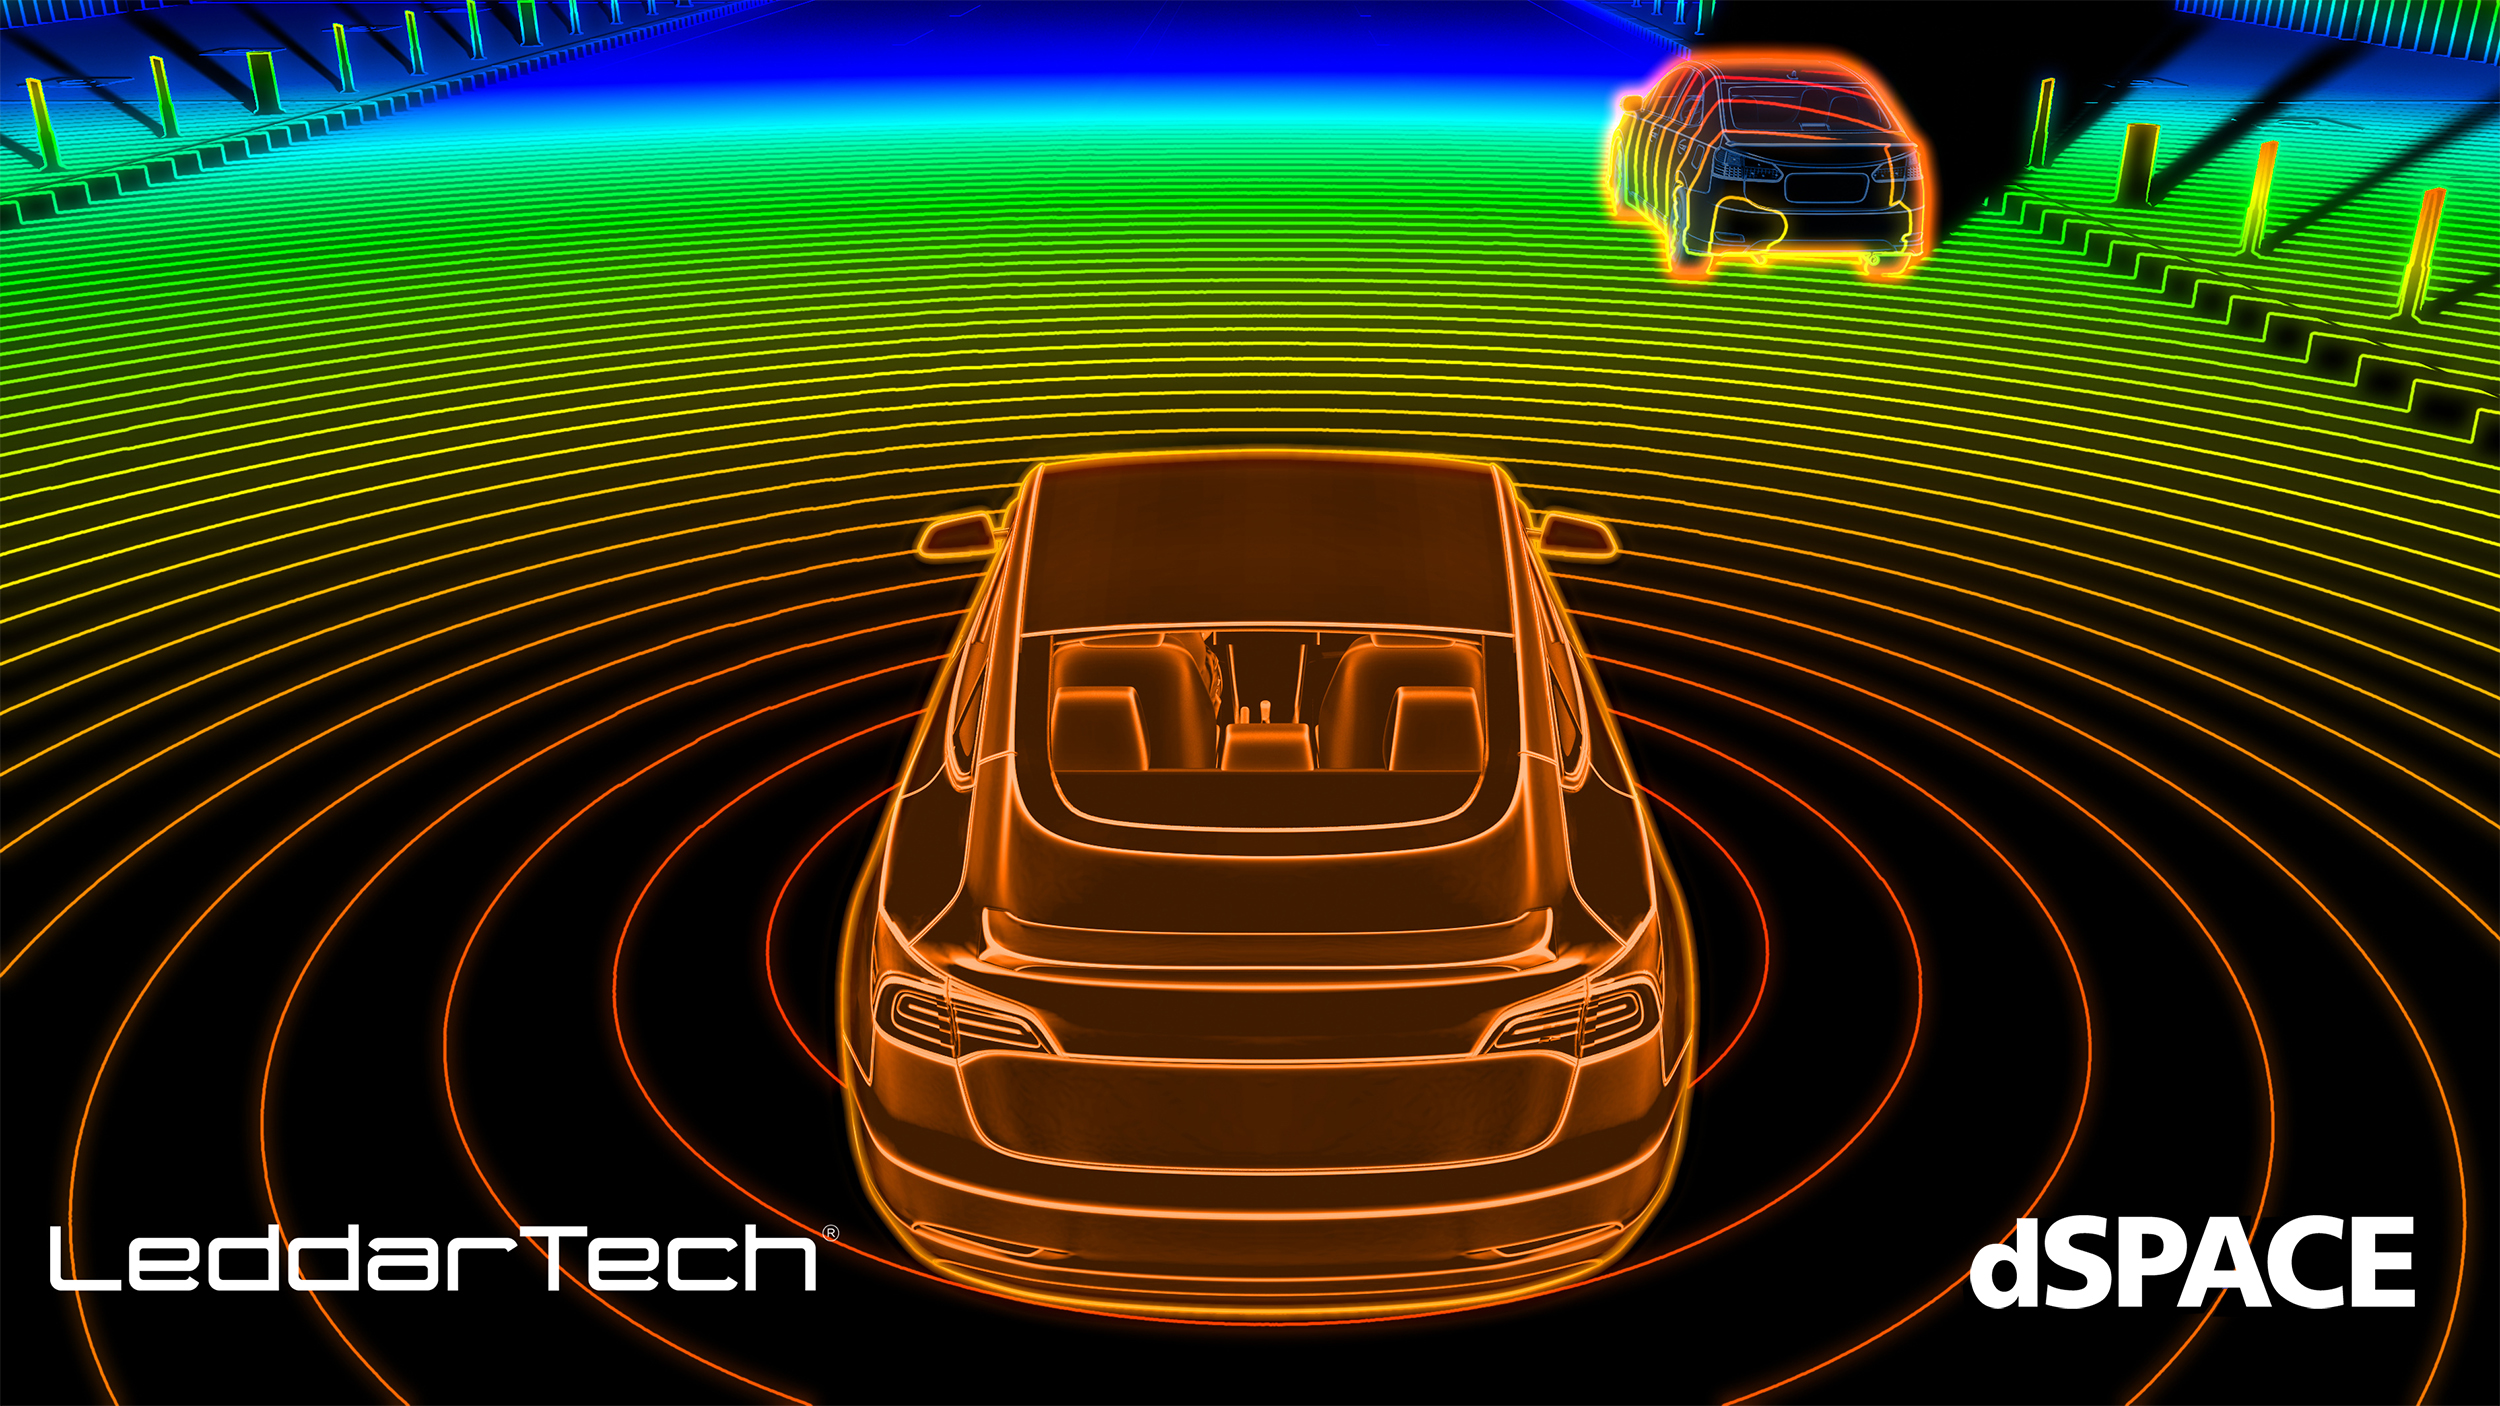 UPDATE - dSPACE and LeddarTech Join Forces to Deliver Key Tools Enabling Deployment of ADAS and AD Systems